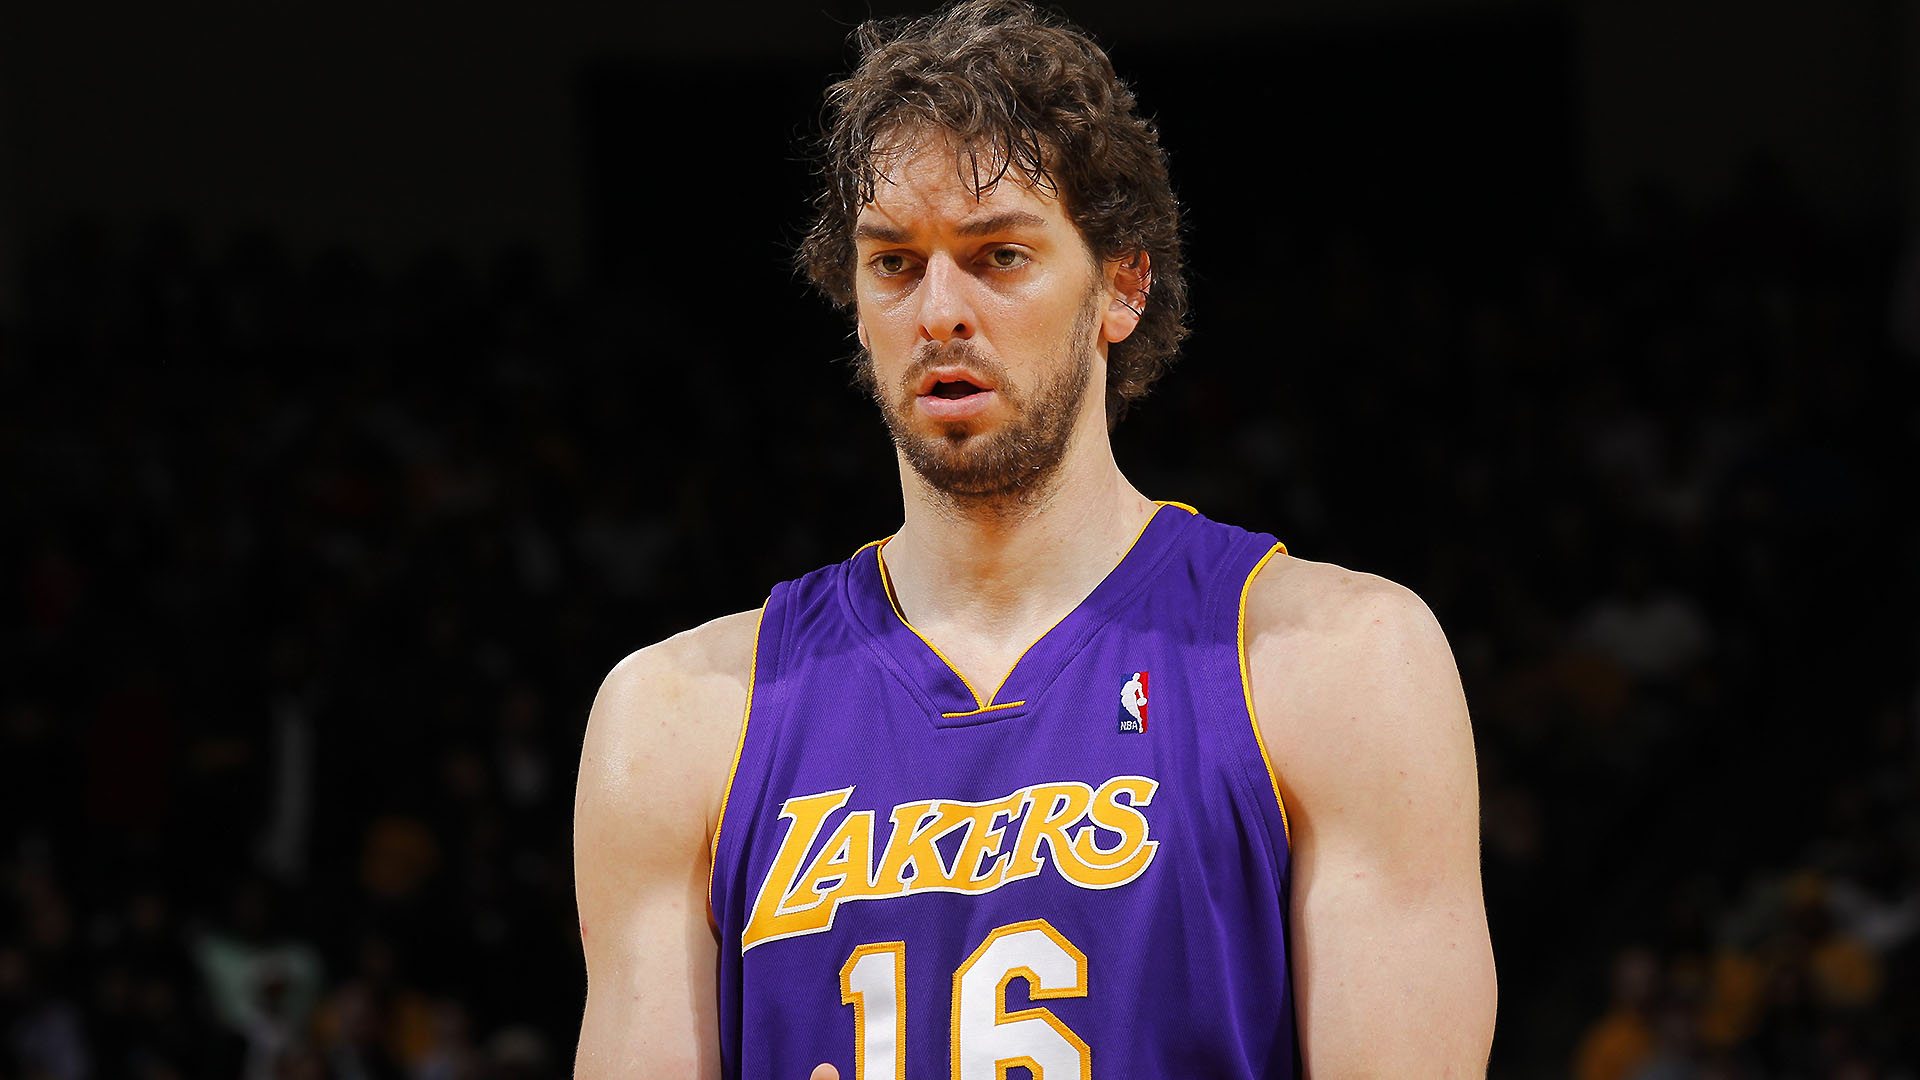 Pau Gasol retires, Lakers reportedly planning to hang up No. 16